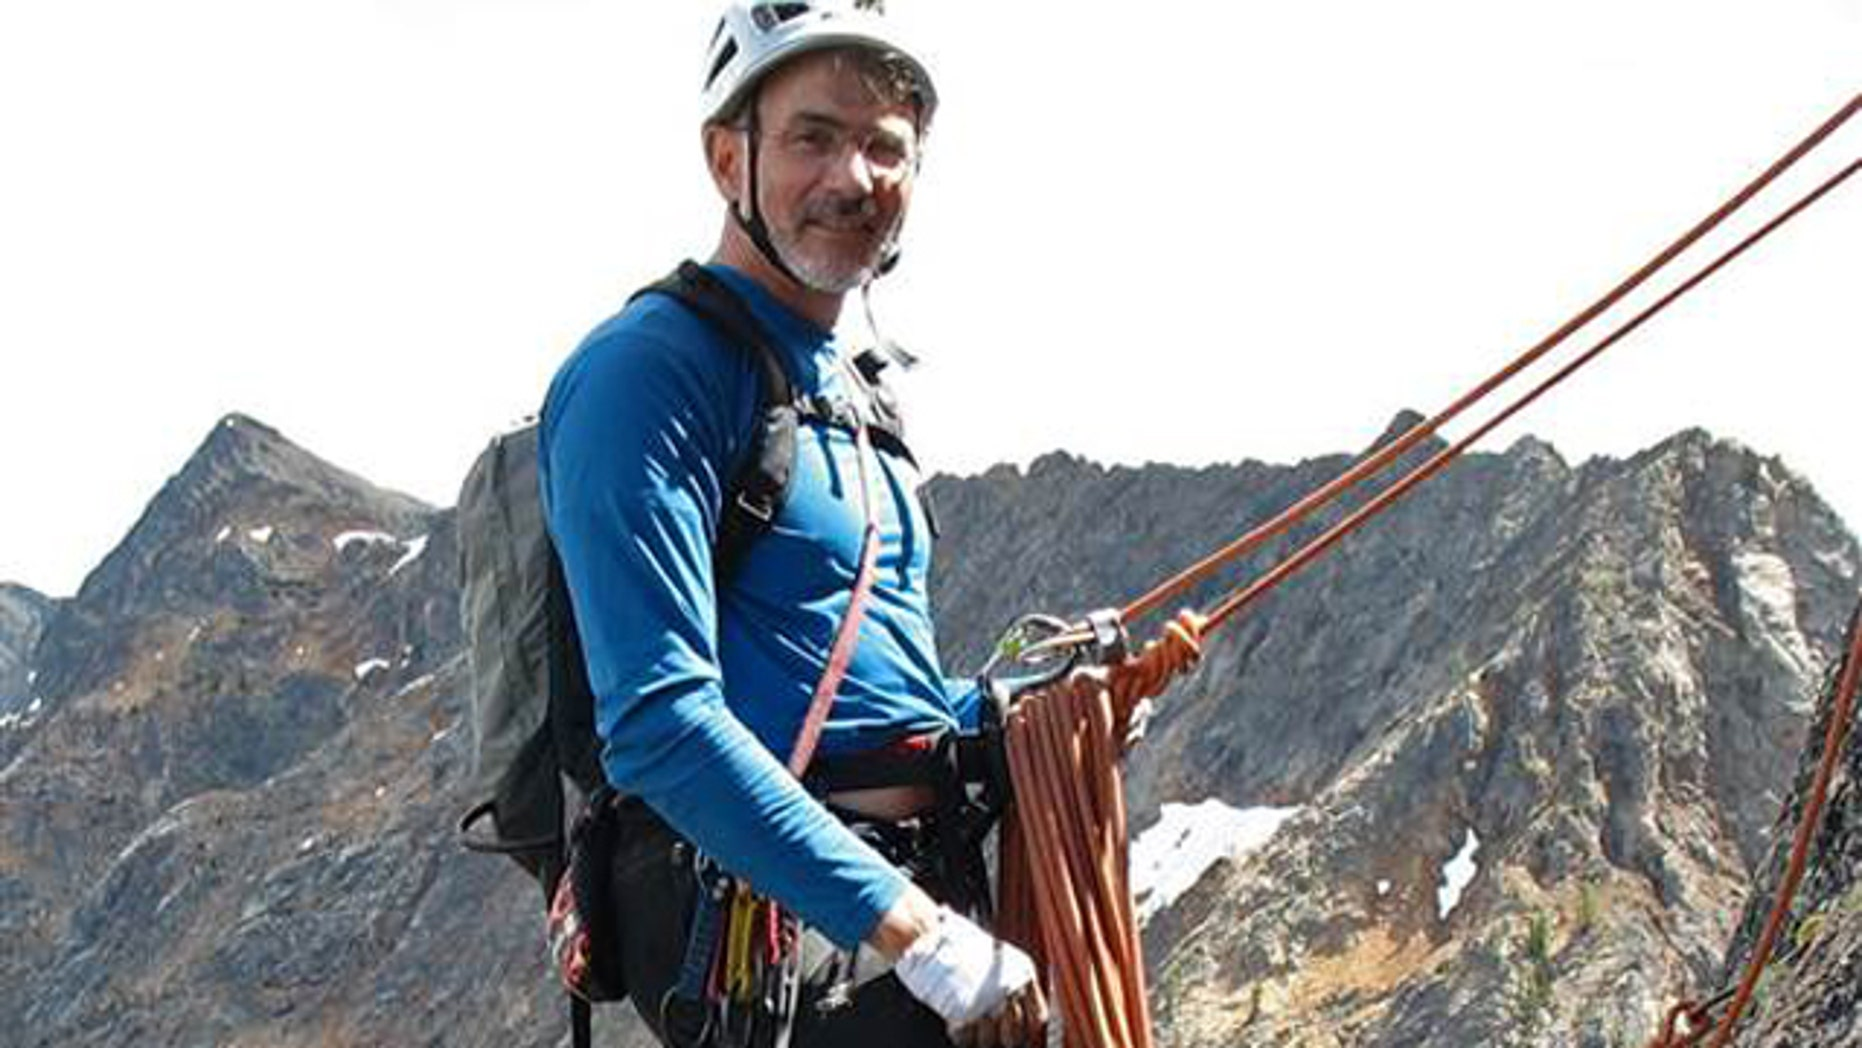 Doug Walker is pictured mountain climbing.